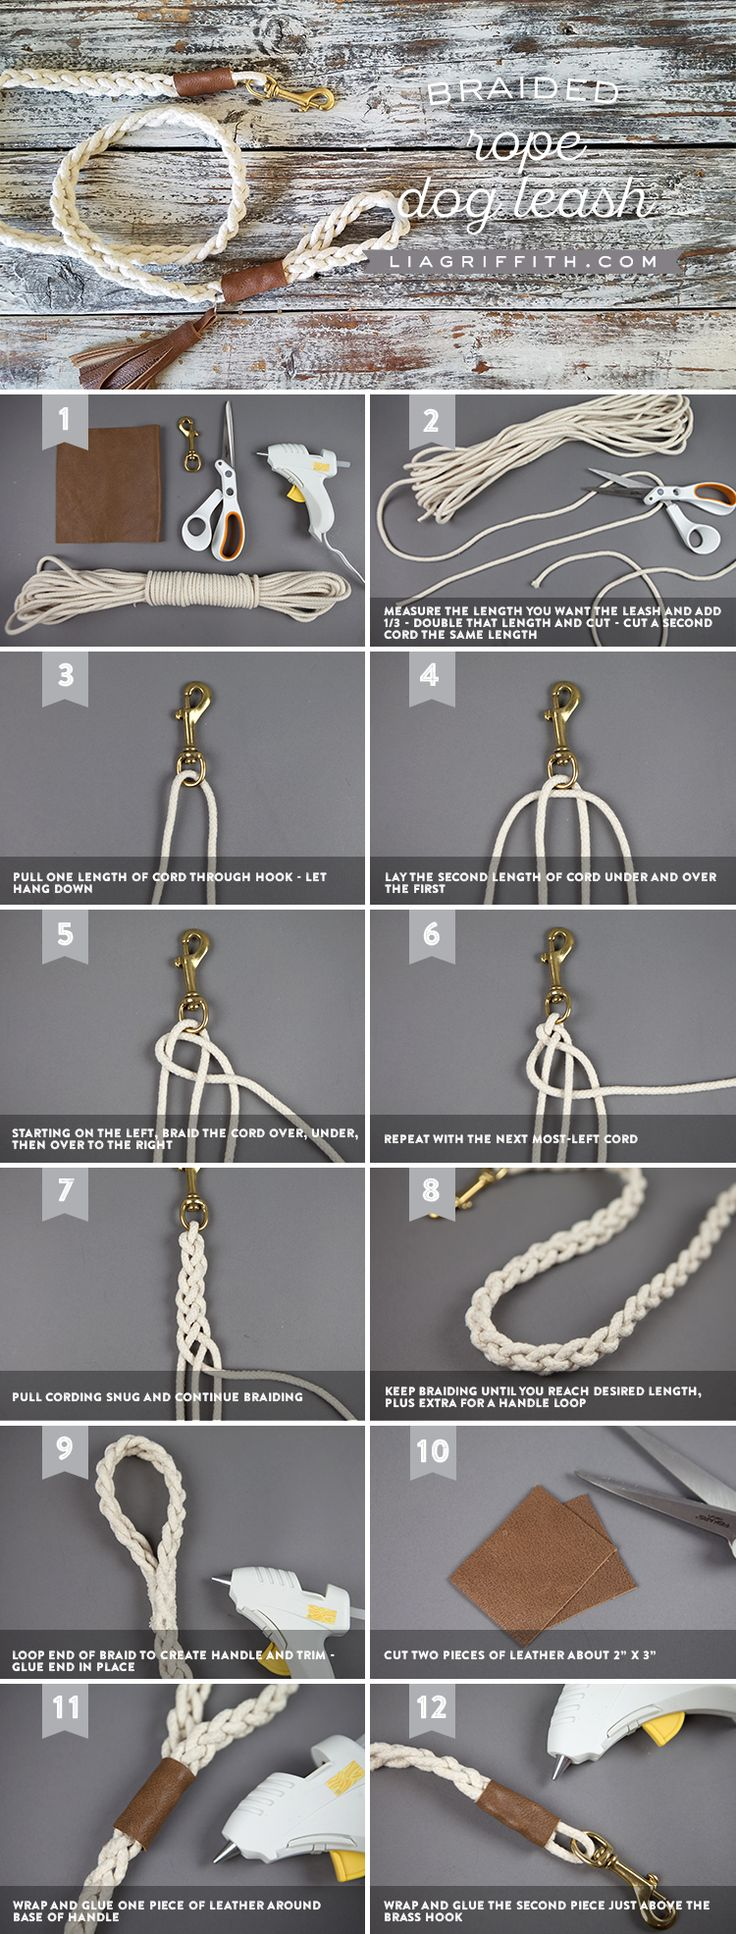 Braided Rope Dog Leash with Leather Details